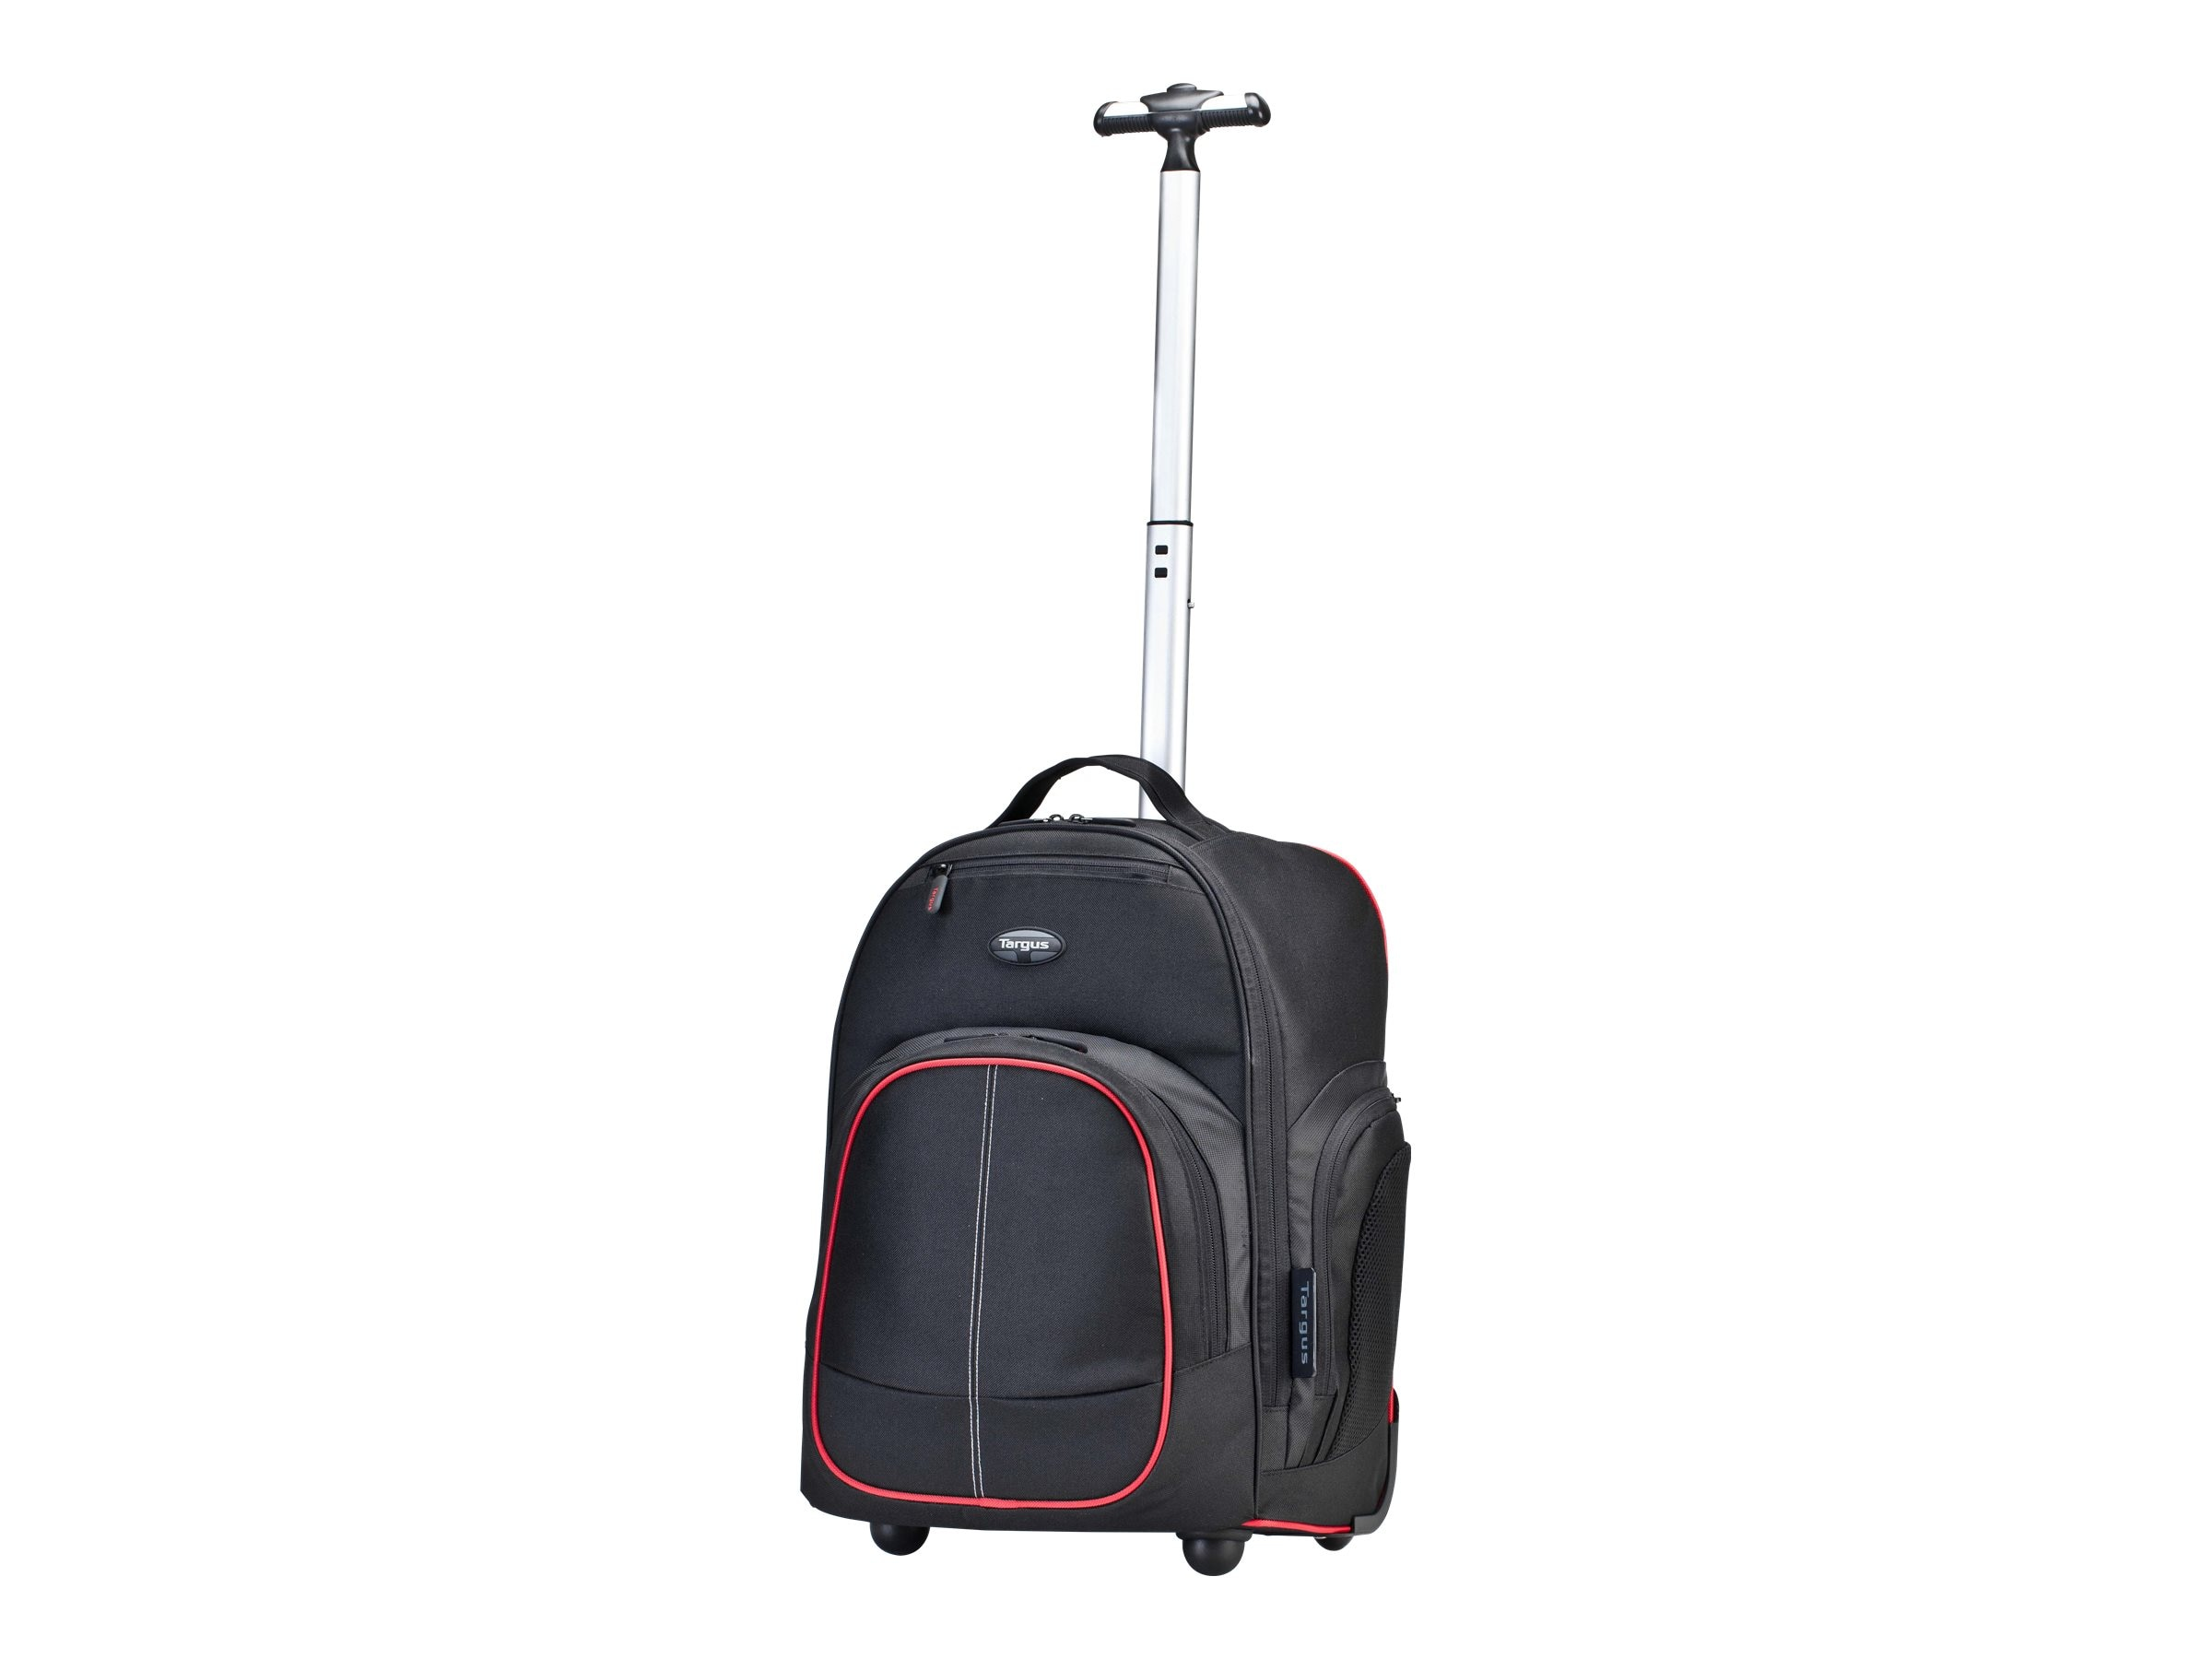 Targus 16 Compact Roller Backpack, Red Black, TSB75001US